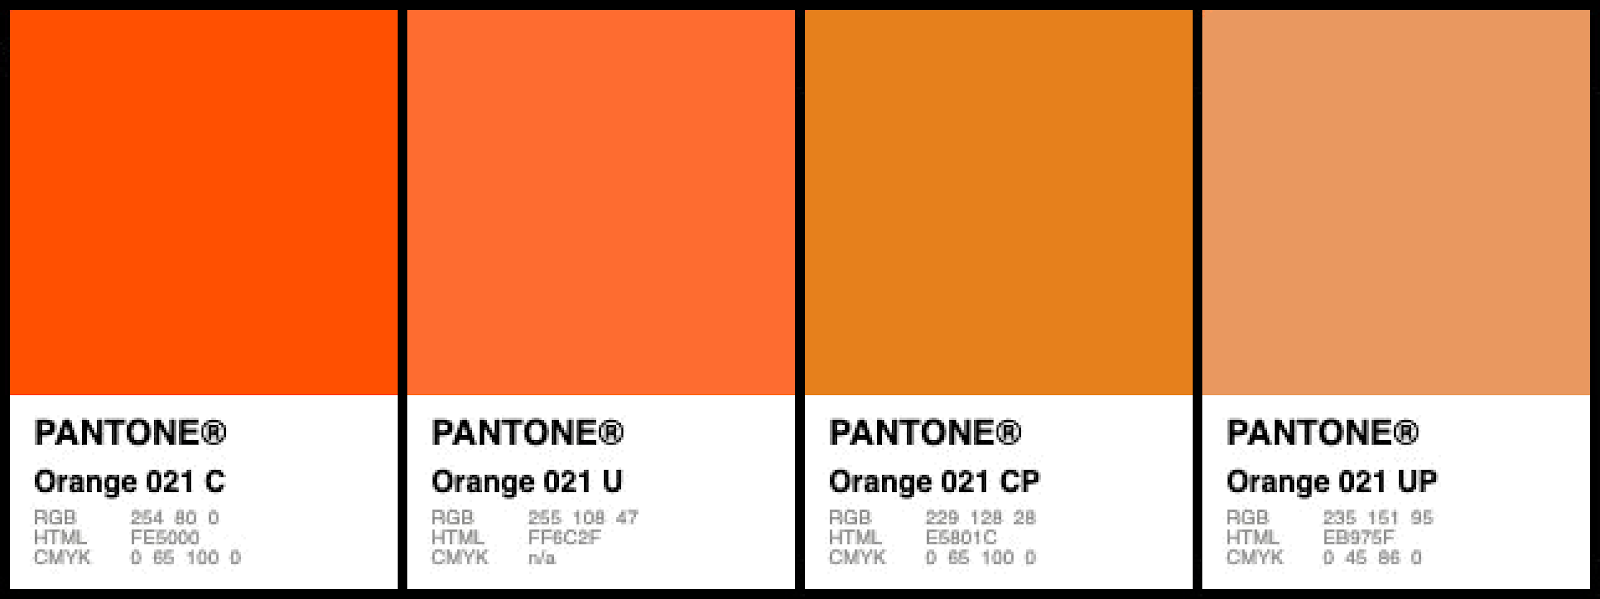 Pantone coated vs uncoated